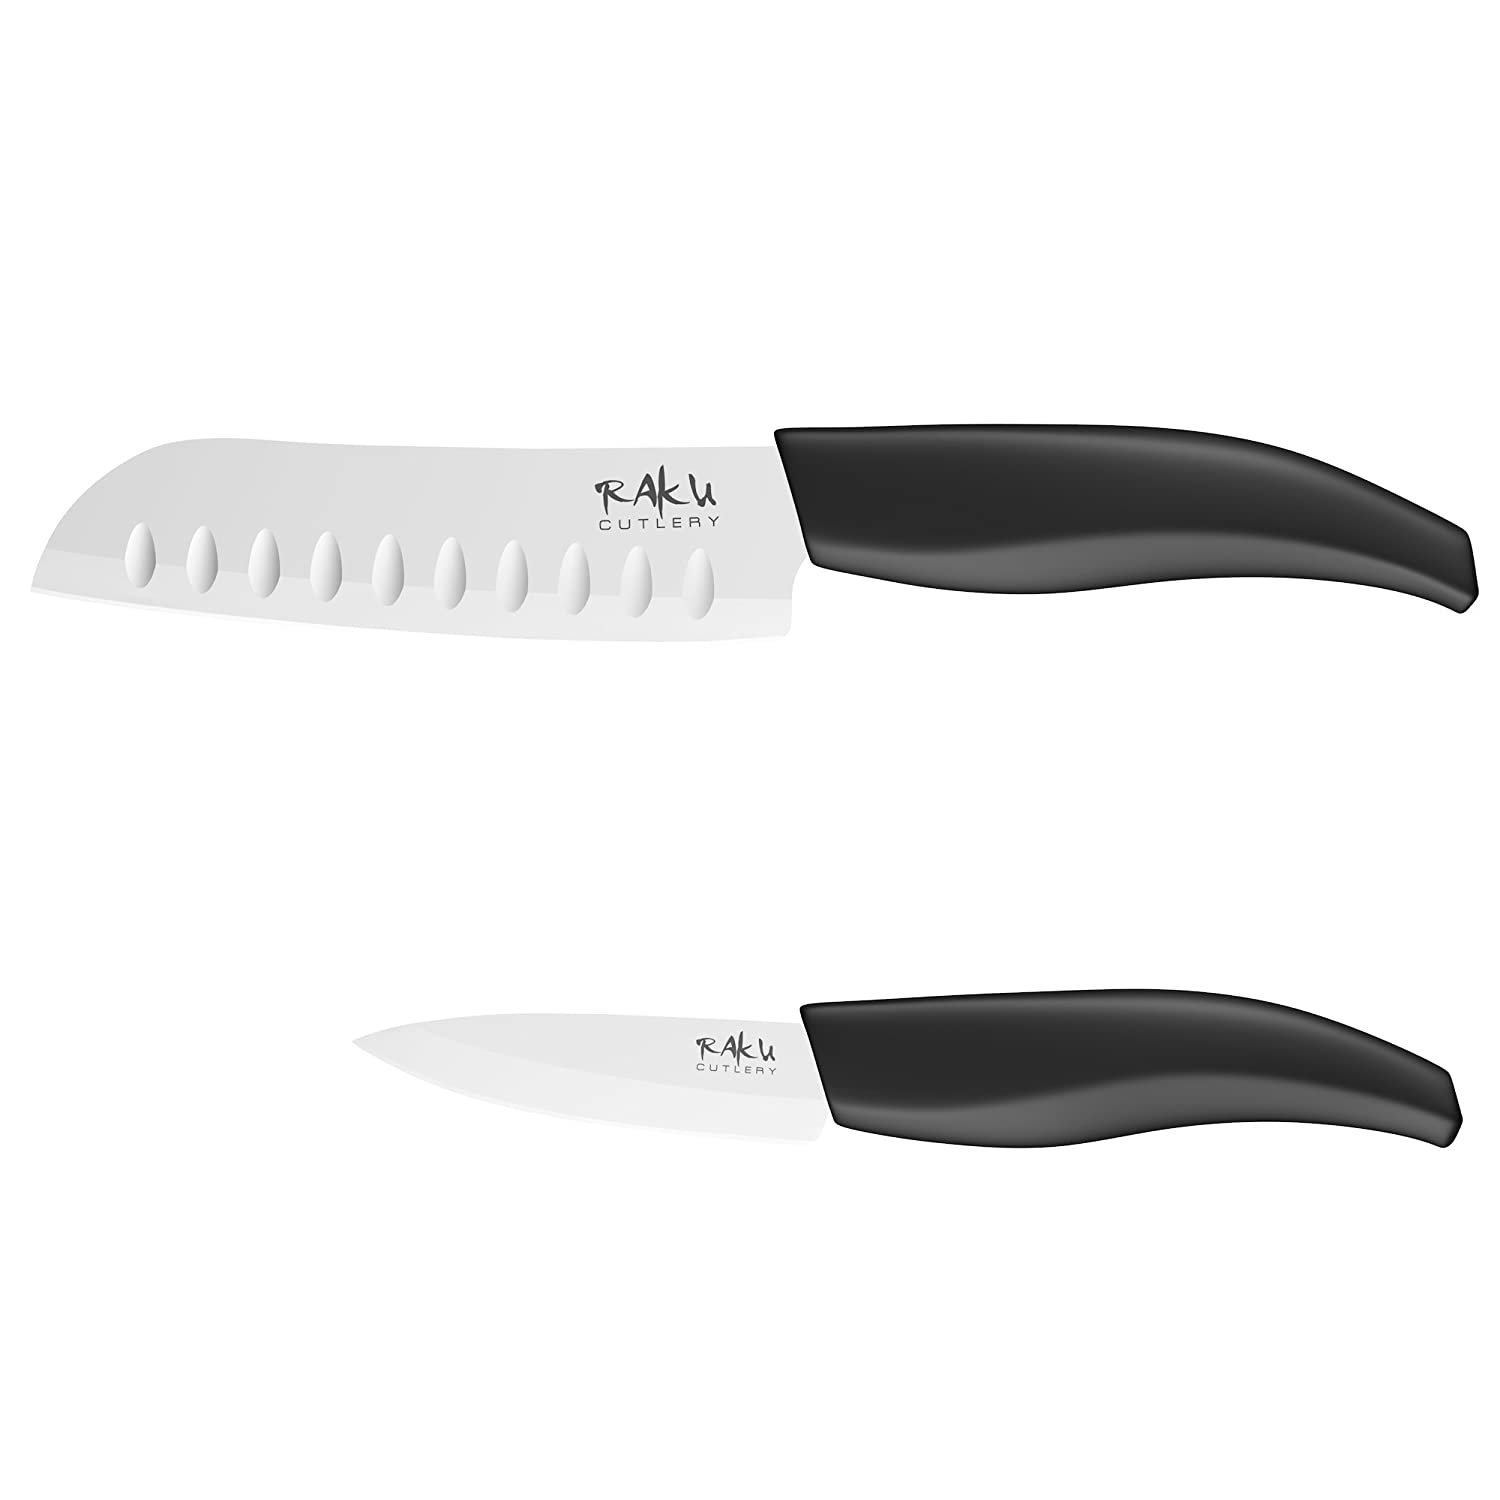 raku cutlery ceramic knives set with 5 inch santoku